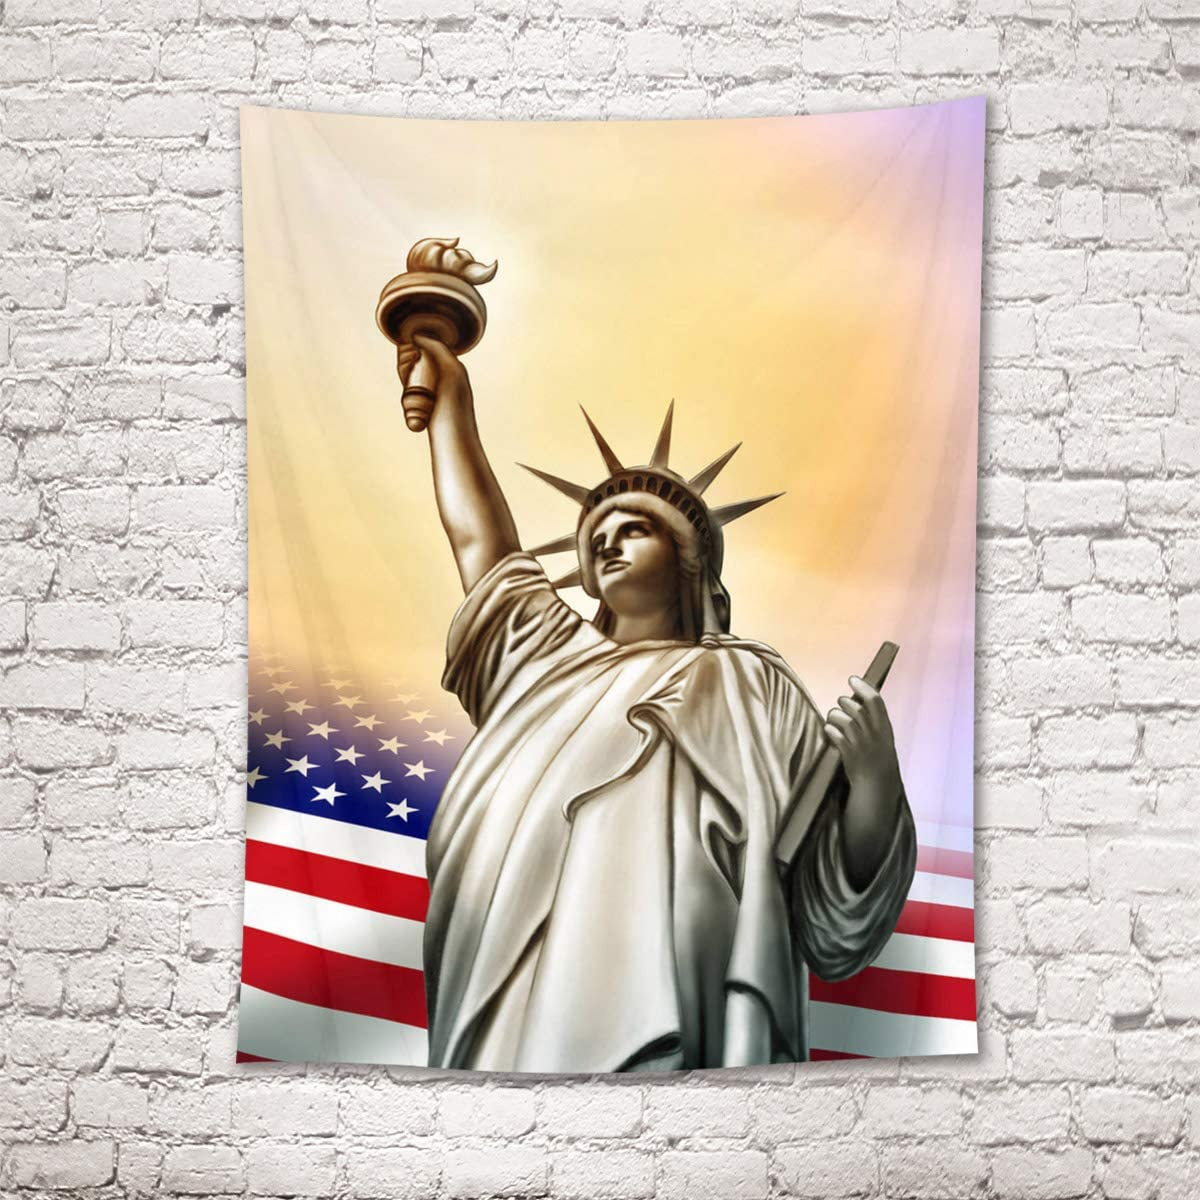 HVEST Statue of Liberty Tapestry American Flag Wall Art Independence Day Wall Hanging Tapestry American Culture Wall Decoration Freedom Picture for Bedroom Home Dorm Decor 70.9Wx92.5H inches